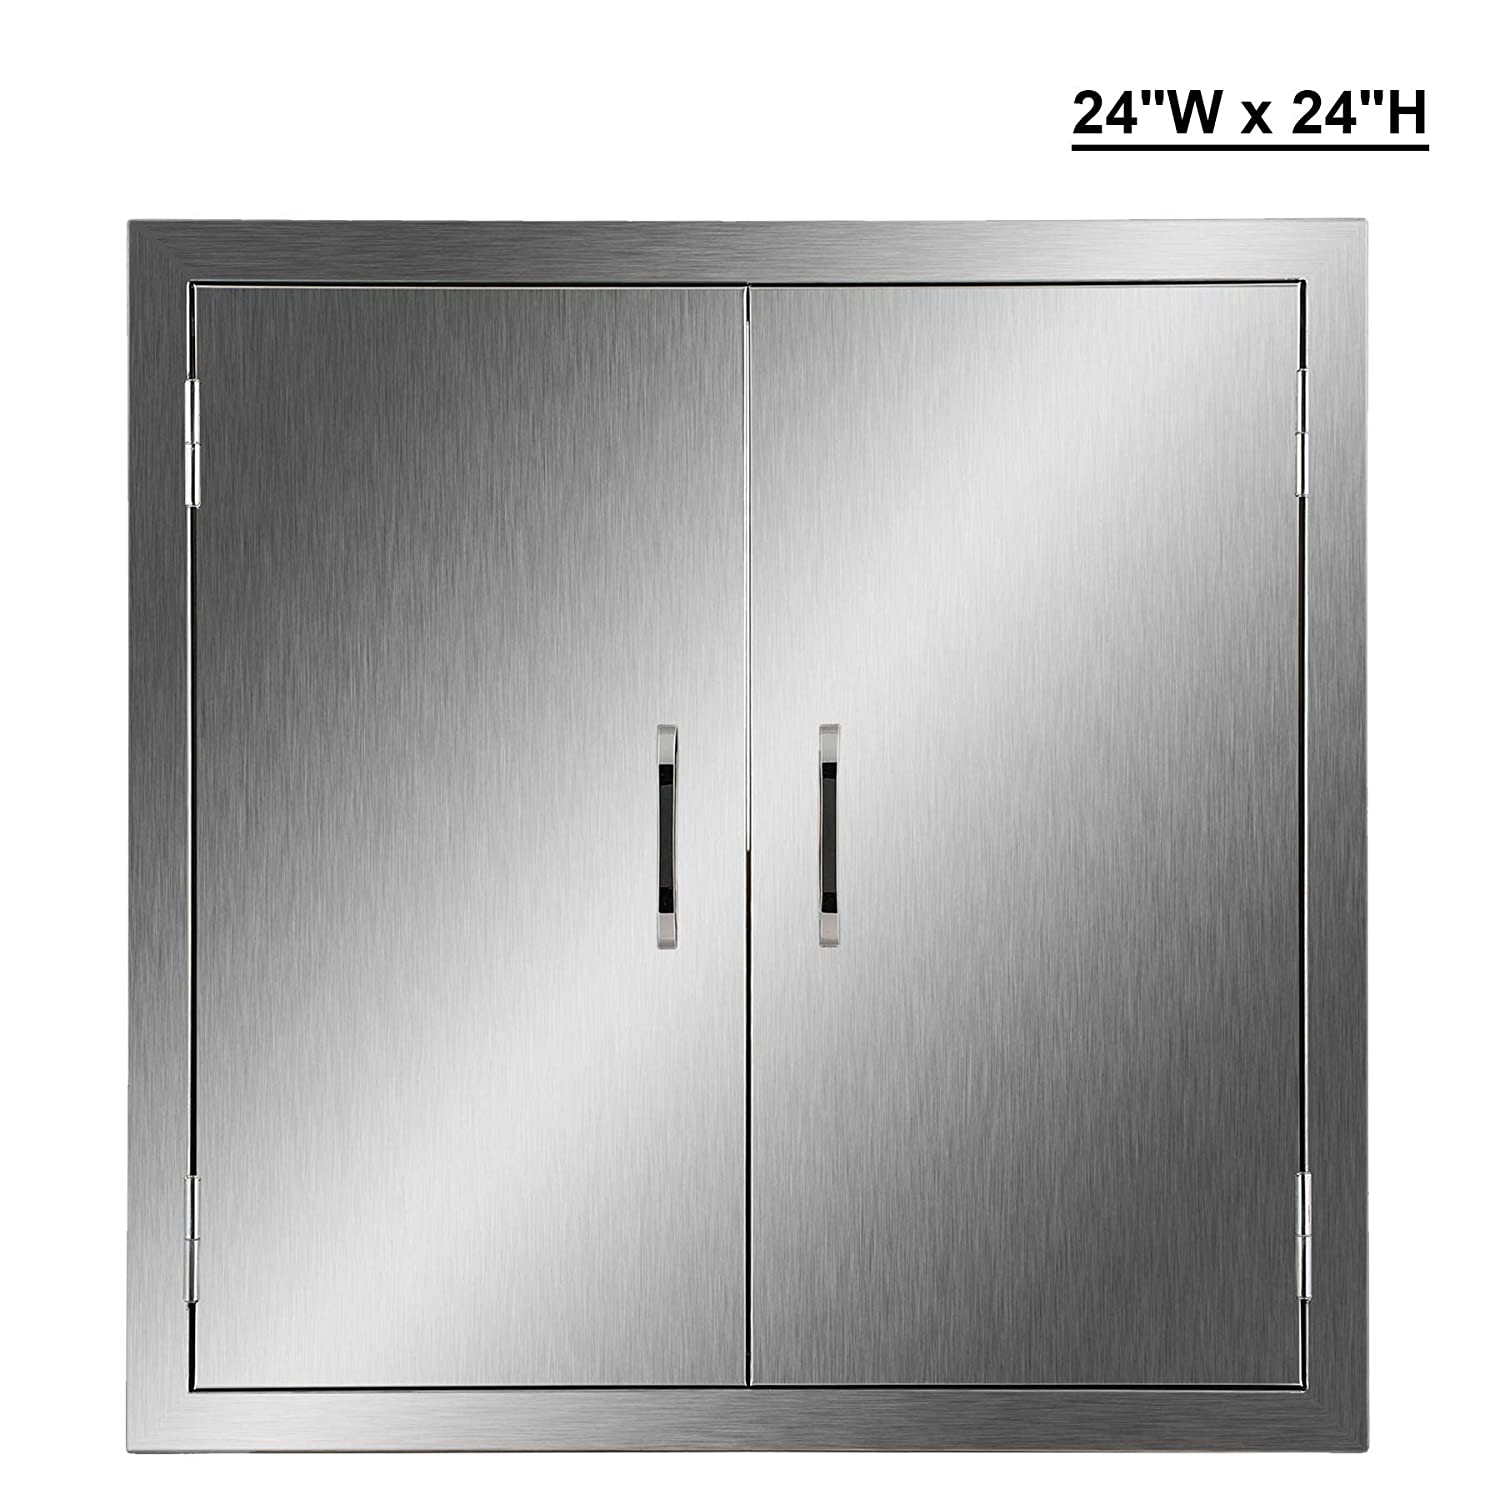 Co z outdoor kitchen doors 304 brushed stainless steel double bbq access doors for outdoor kitchen commercial bbq island grilling station